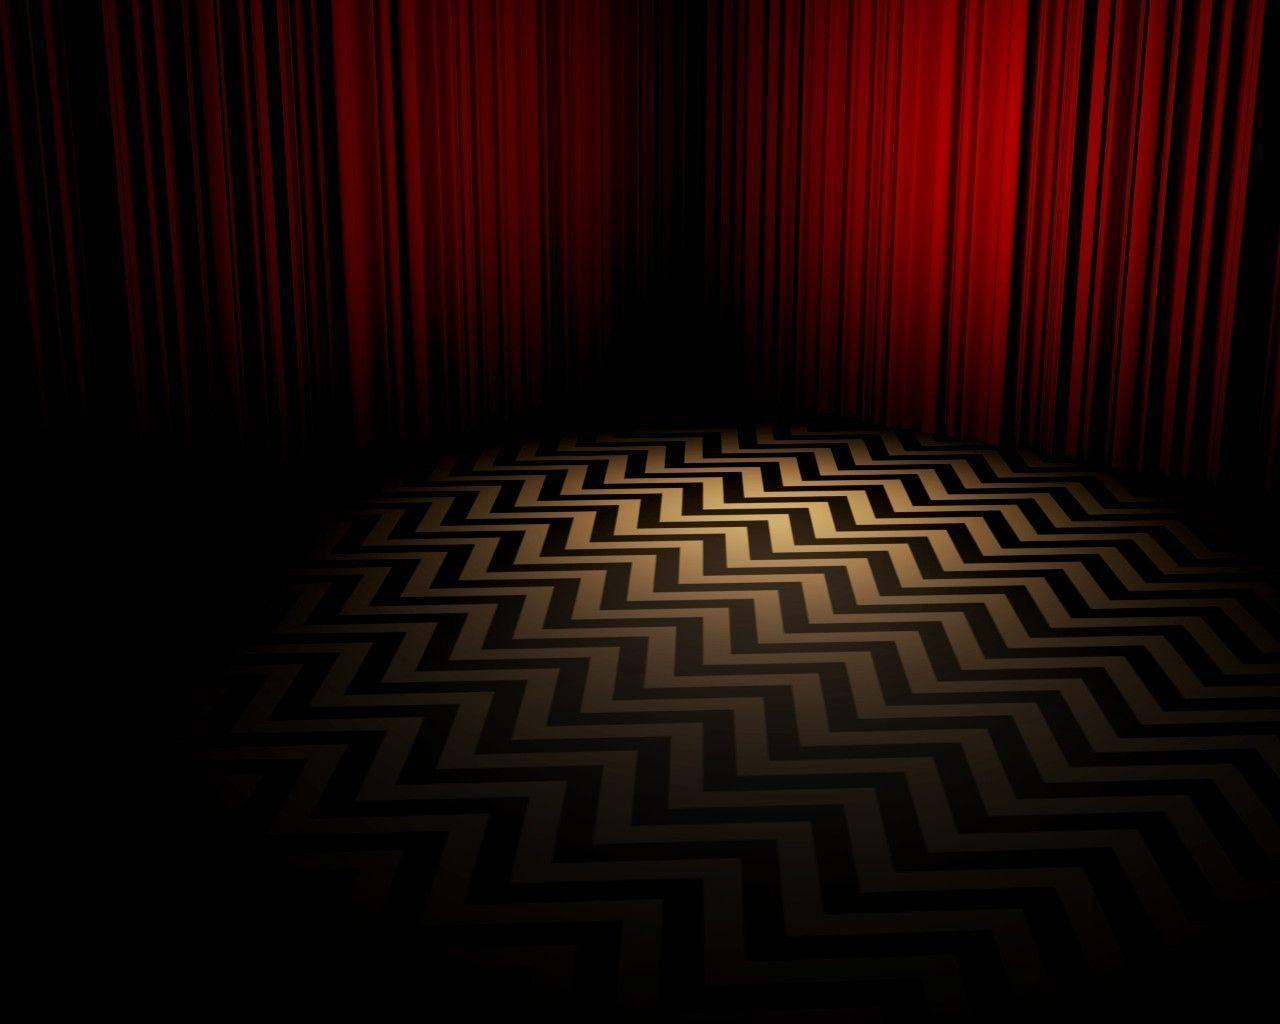 Twin peaks wallpapers wallpaper cave for Black room wallpaper